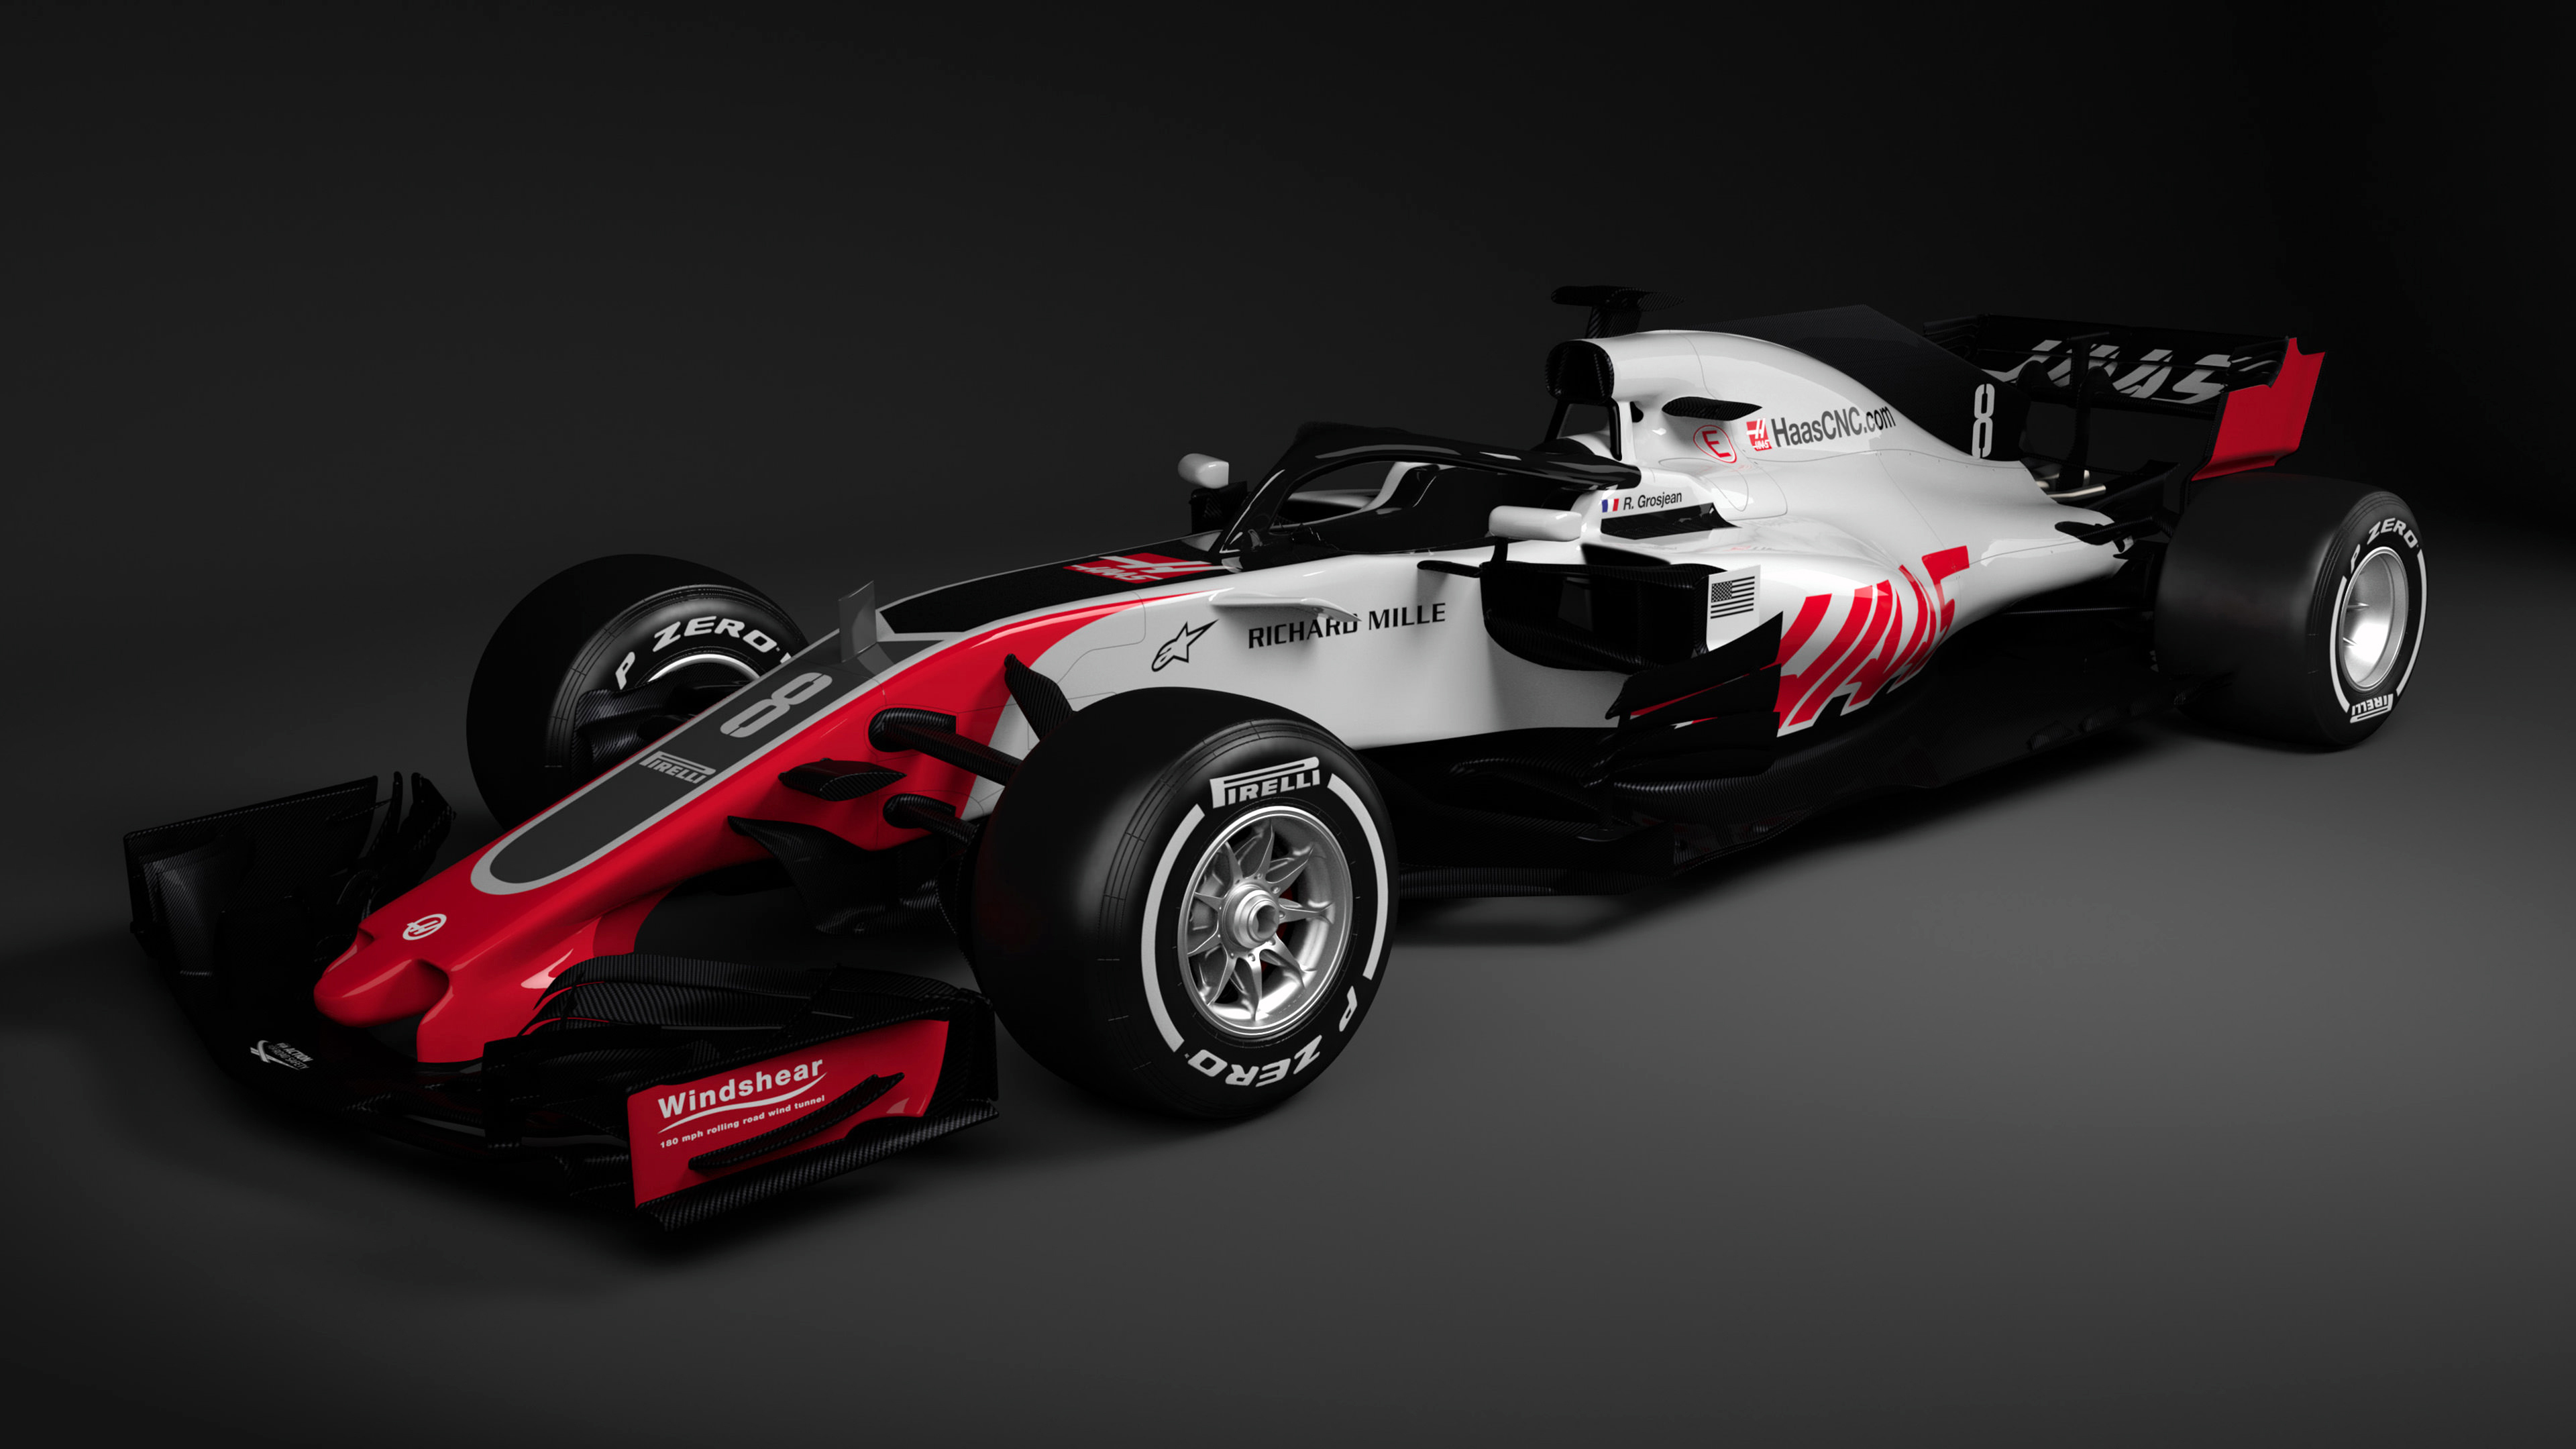 Haas F1 Formula 1 Car 4K 2 Wallpaper HD Car Wallpapers ID 9599 3840x2160